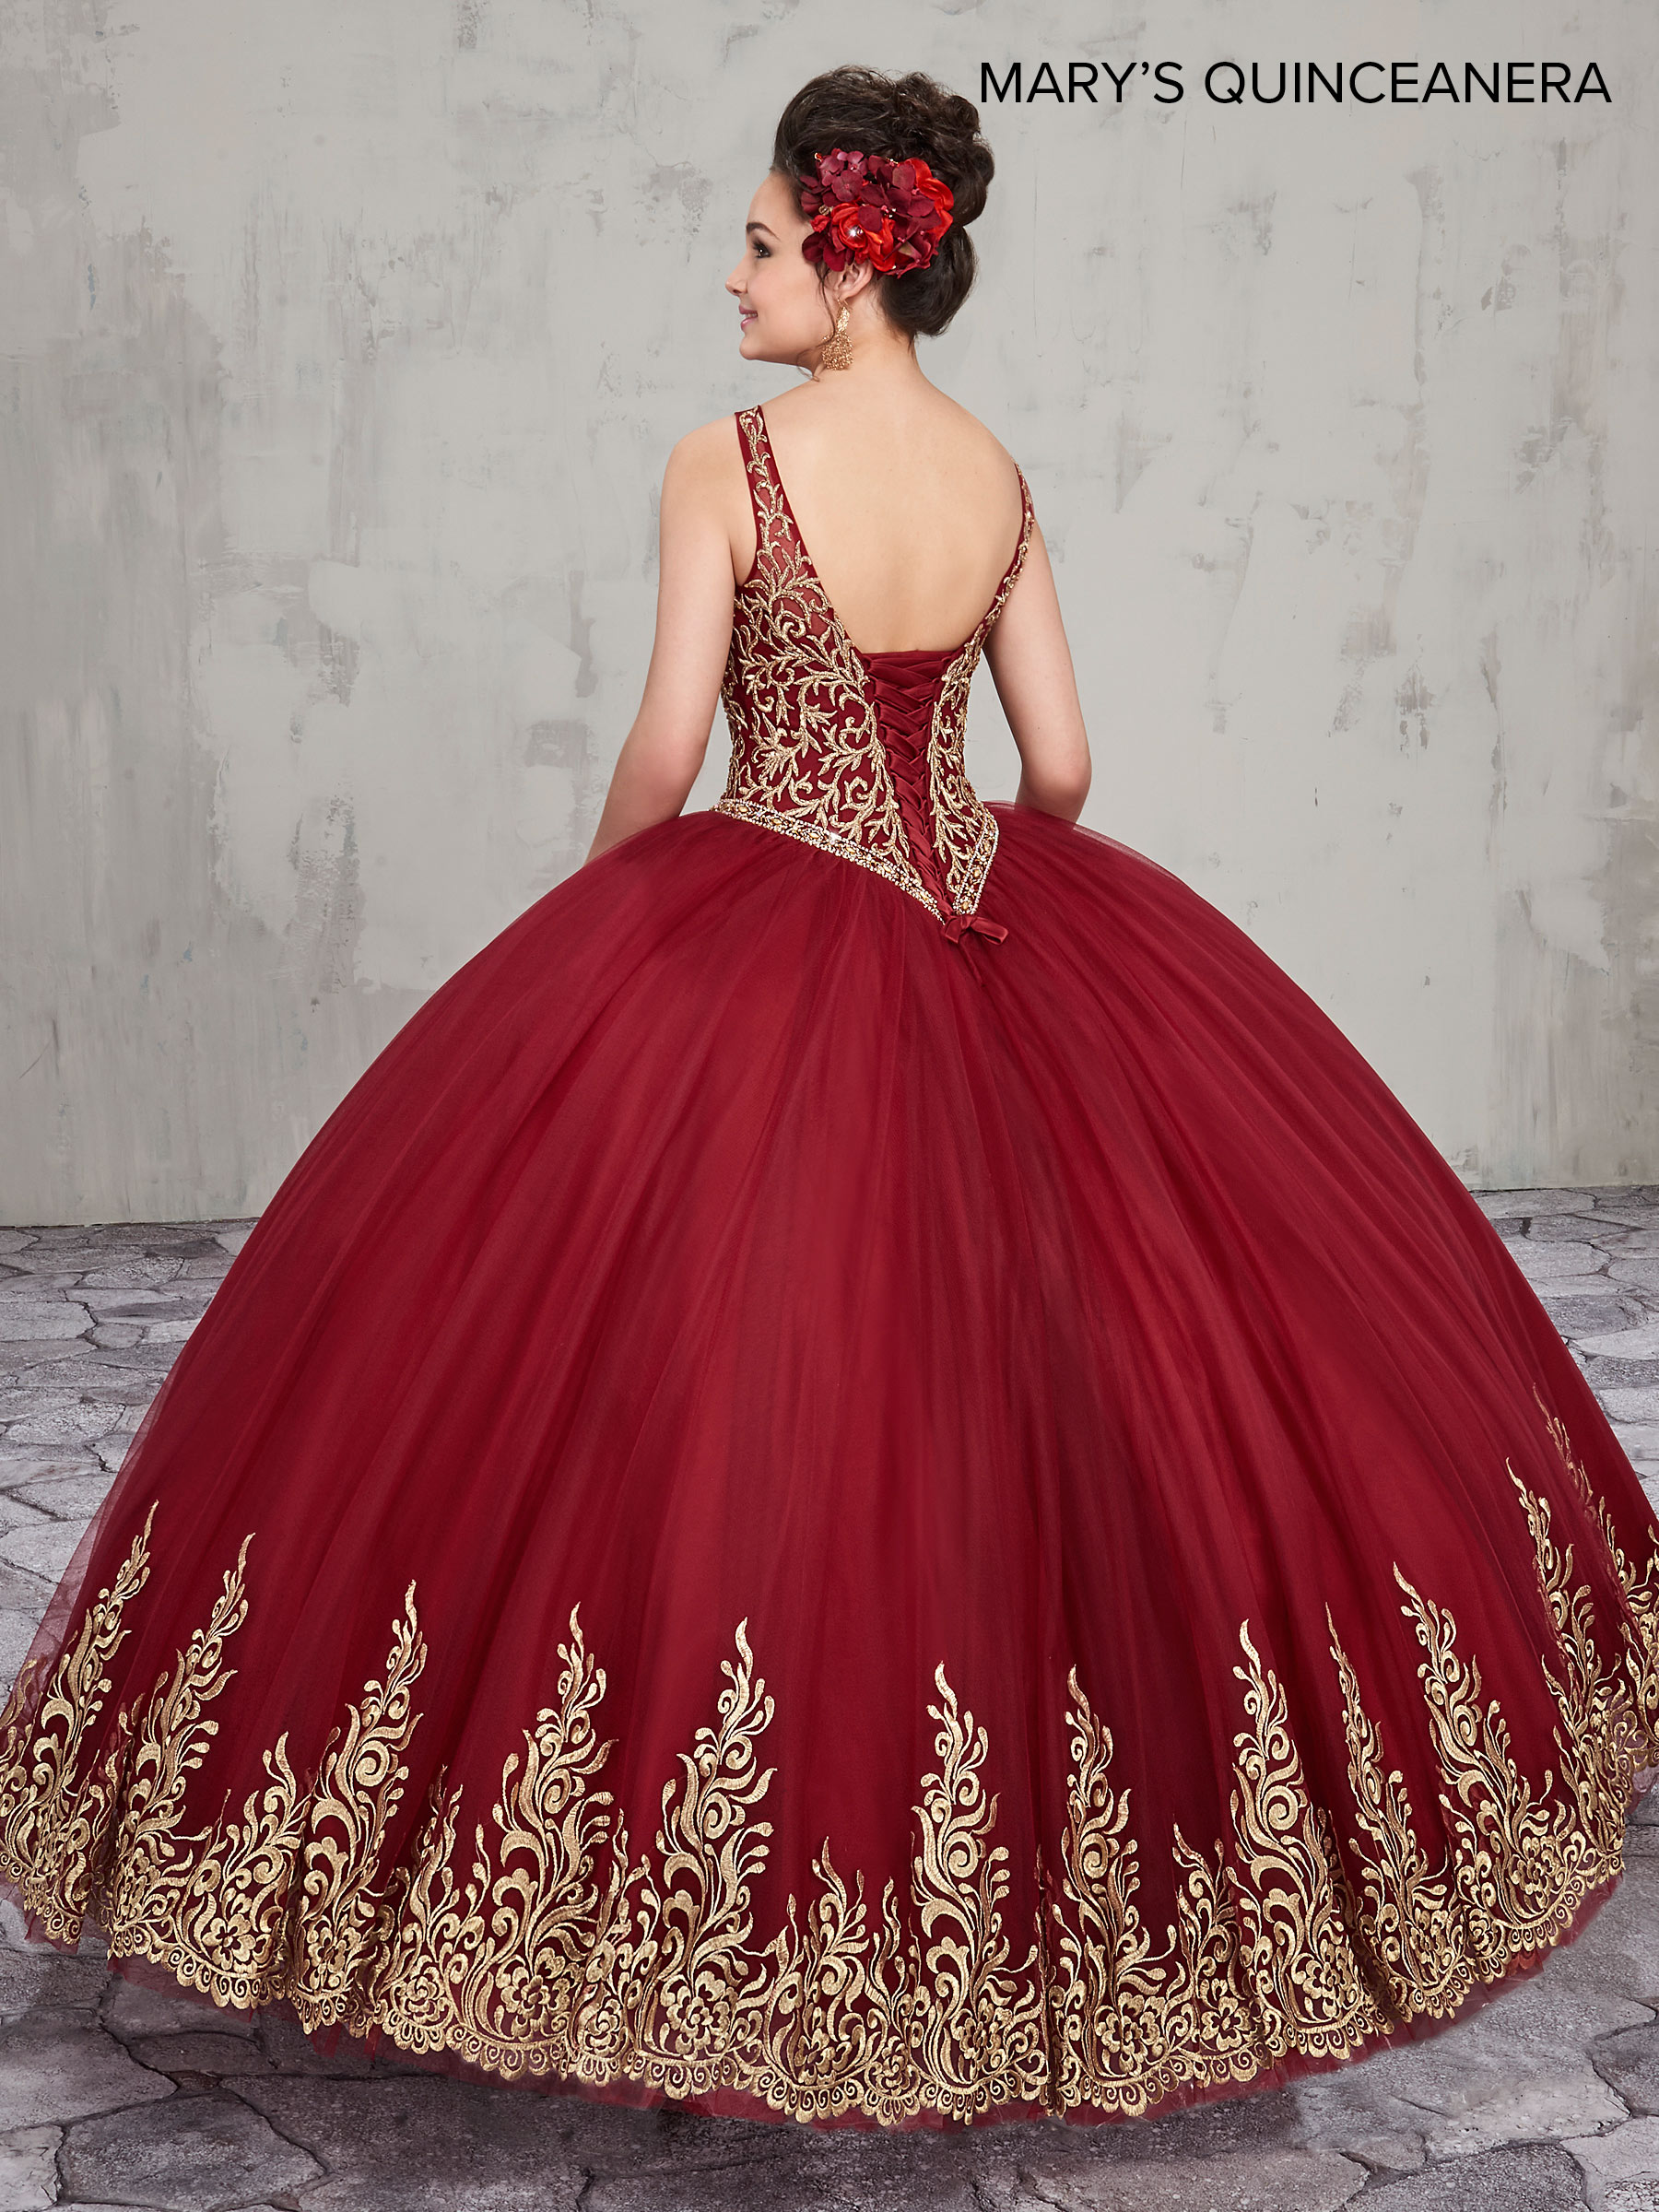 Marys Quinceanera Dresses | Mary's Quinceanera | Style - MQ2012